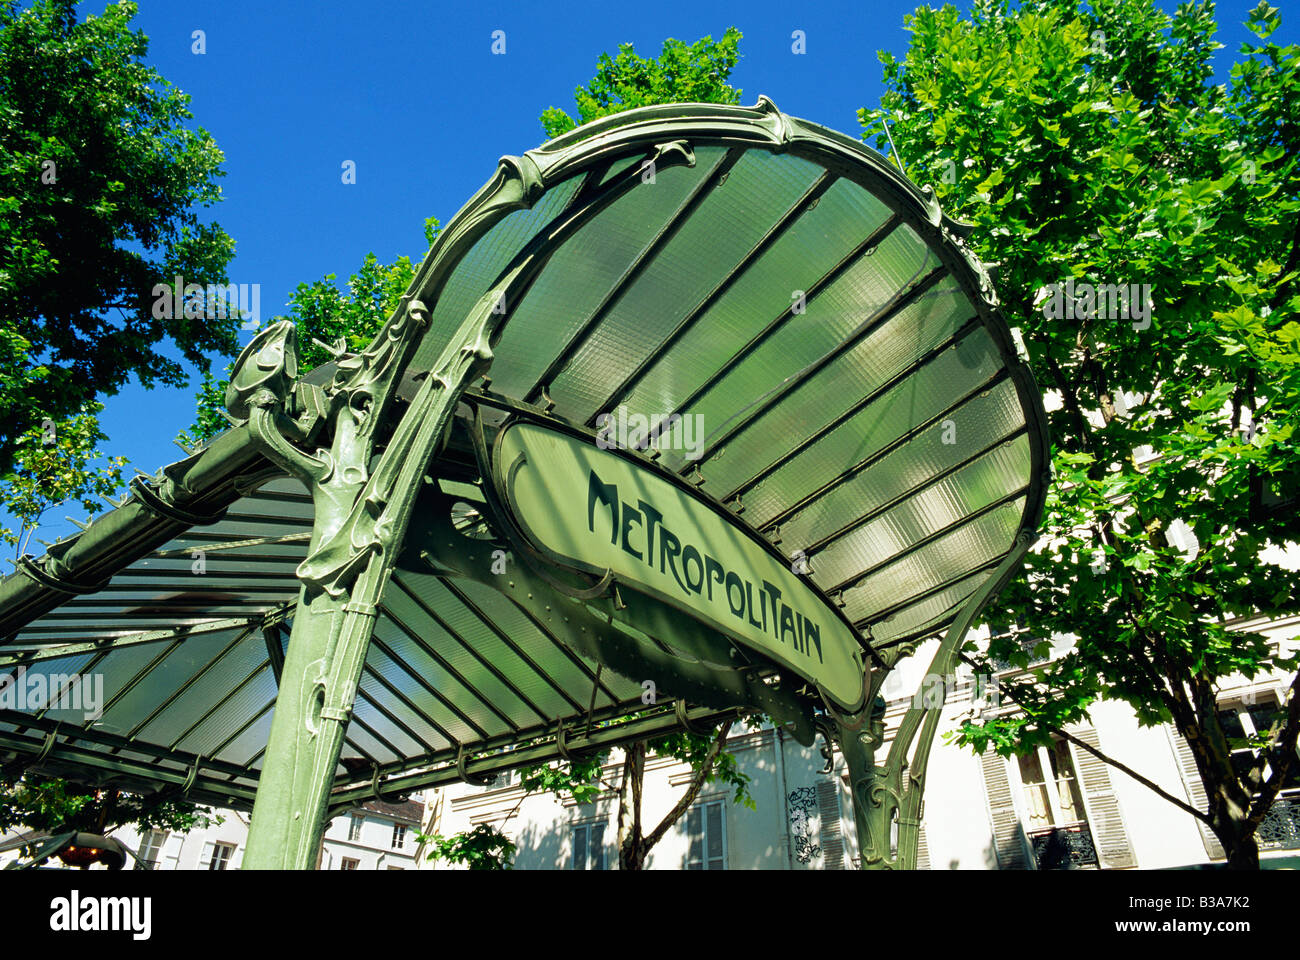 Art Nouveau Metro Stations Paris Stock Photos & Art Nouveau Metro ...